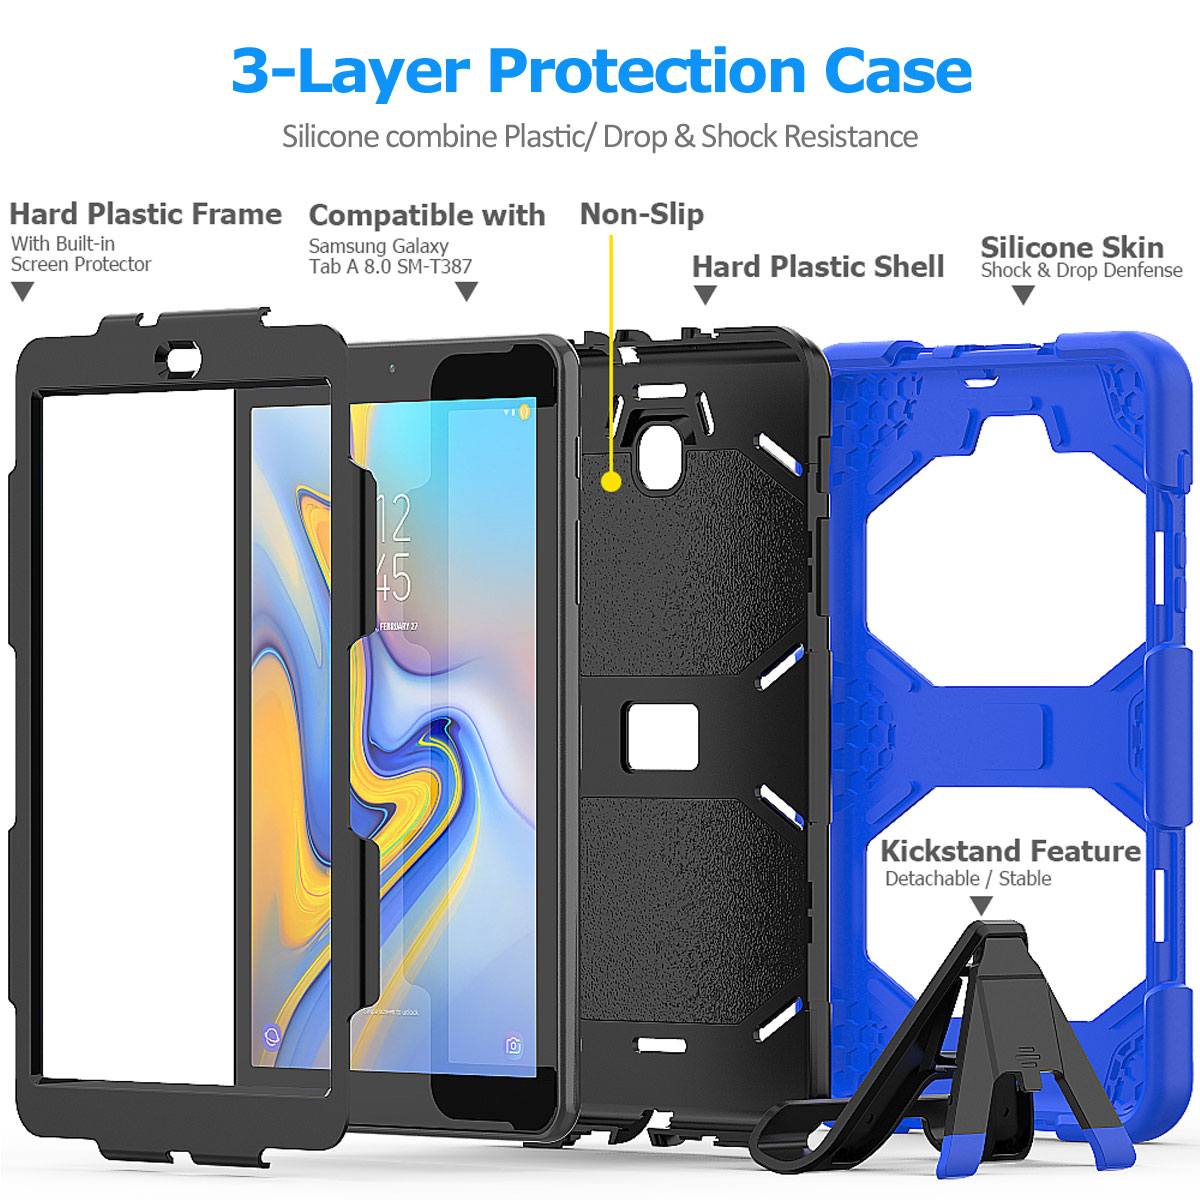 Rugged-Hard-Case-For-Samsung-Galaxy-Tab-A-8-0-2018-SM-T387-with-Screen-Protector thumbnail 77